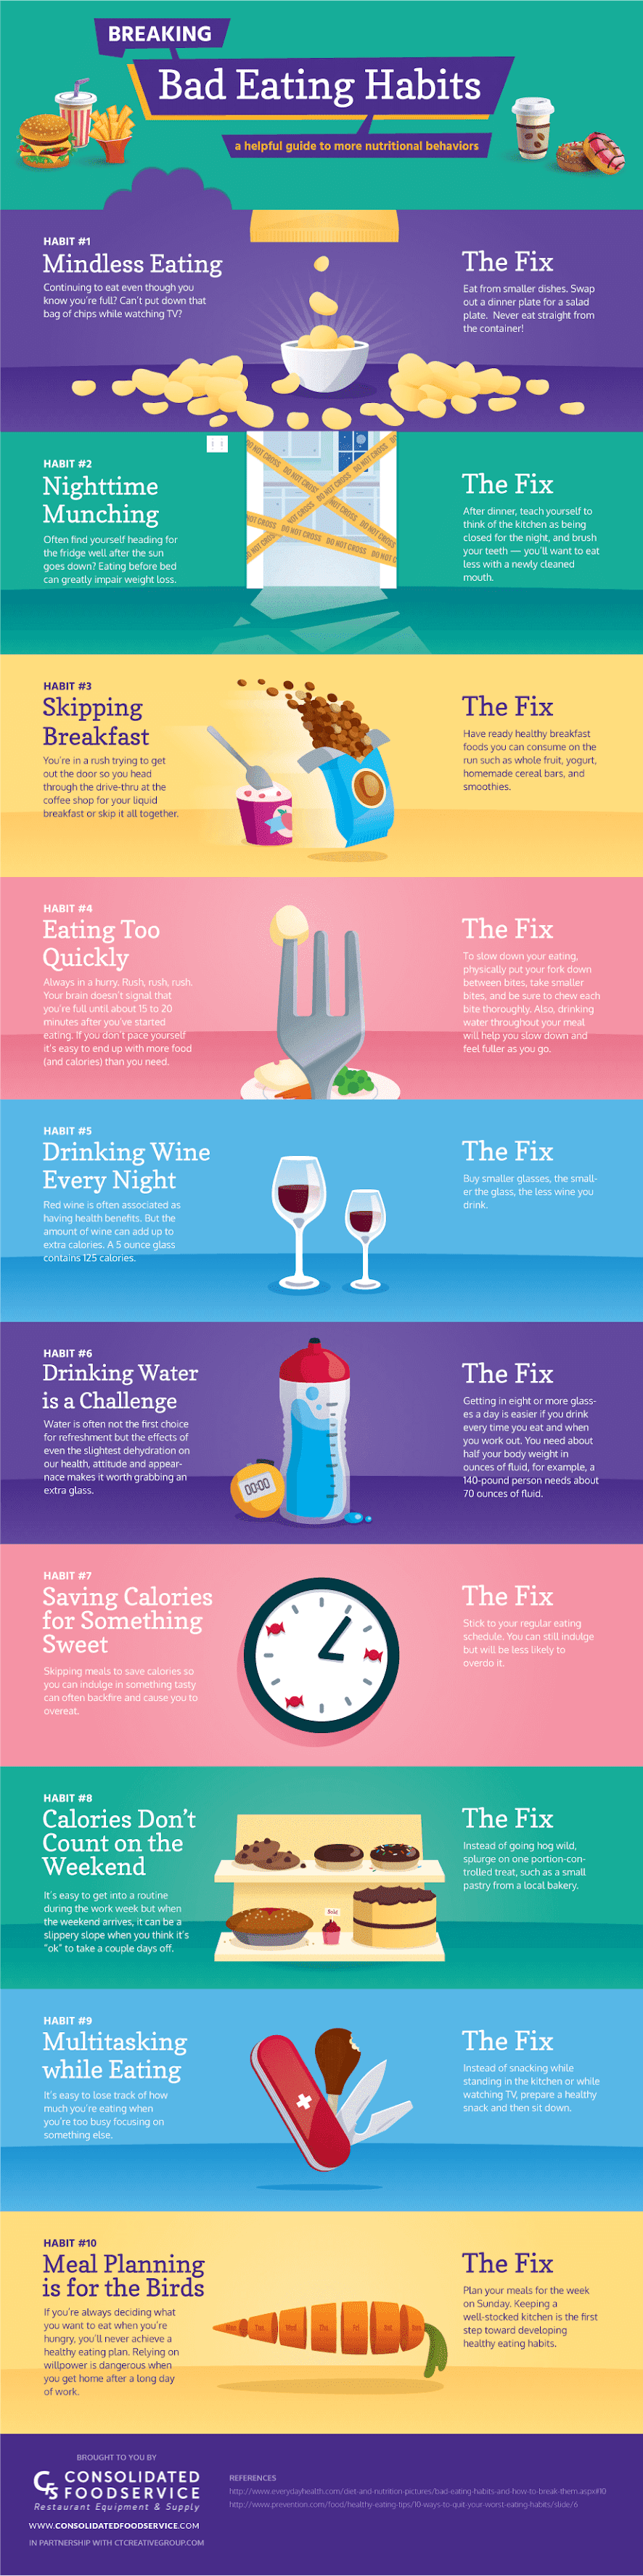 Breaking Bad Eating Habits #infographic #Eating Habits #Bad Eating #Food